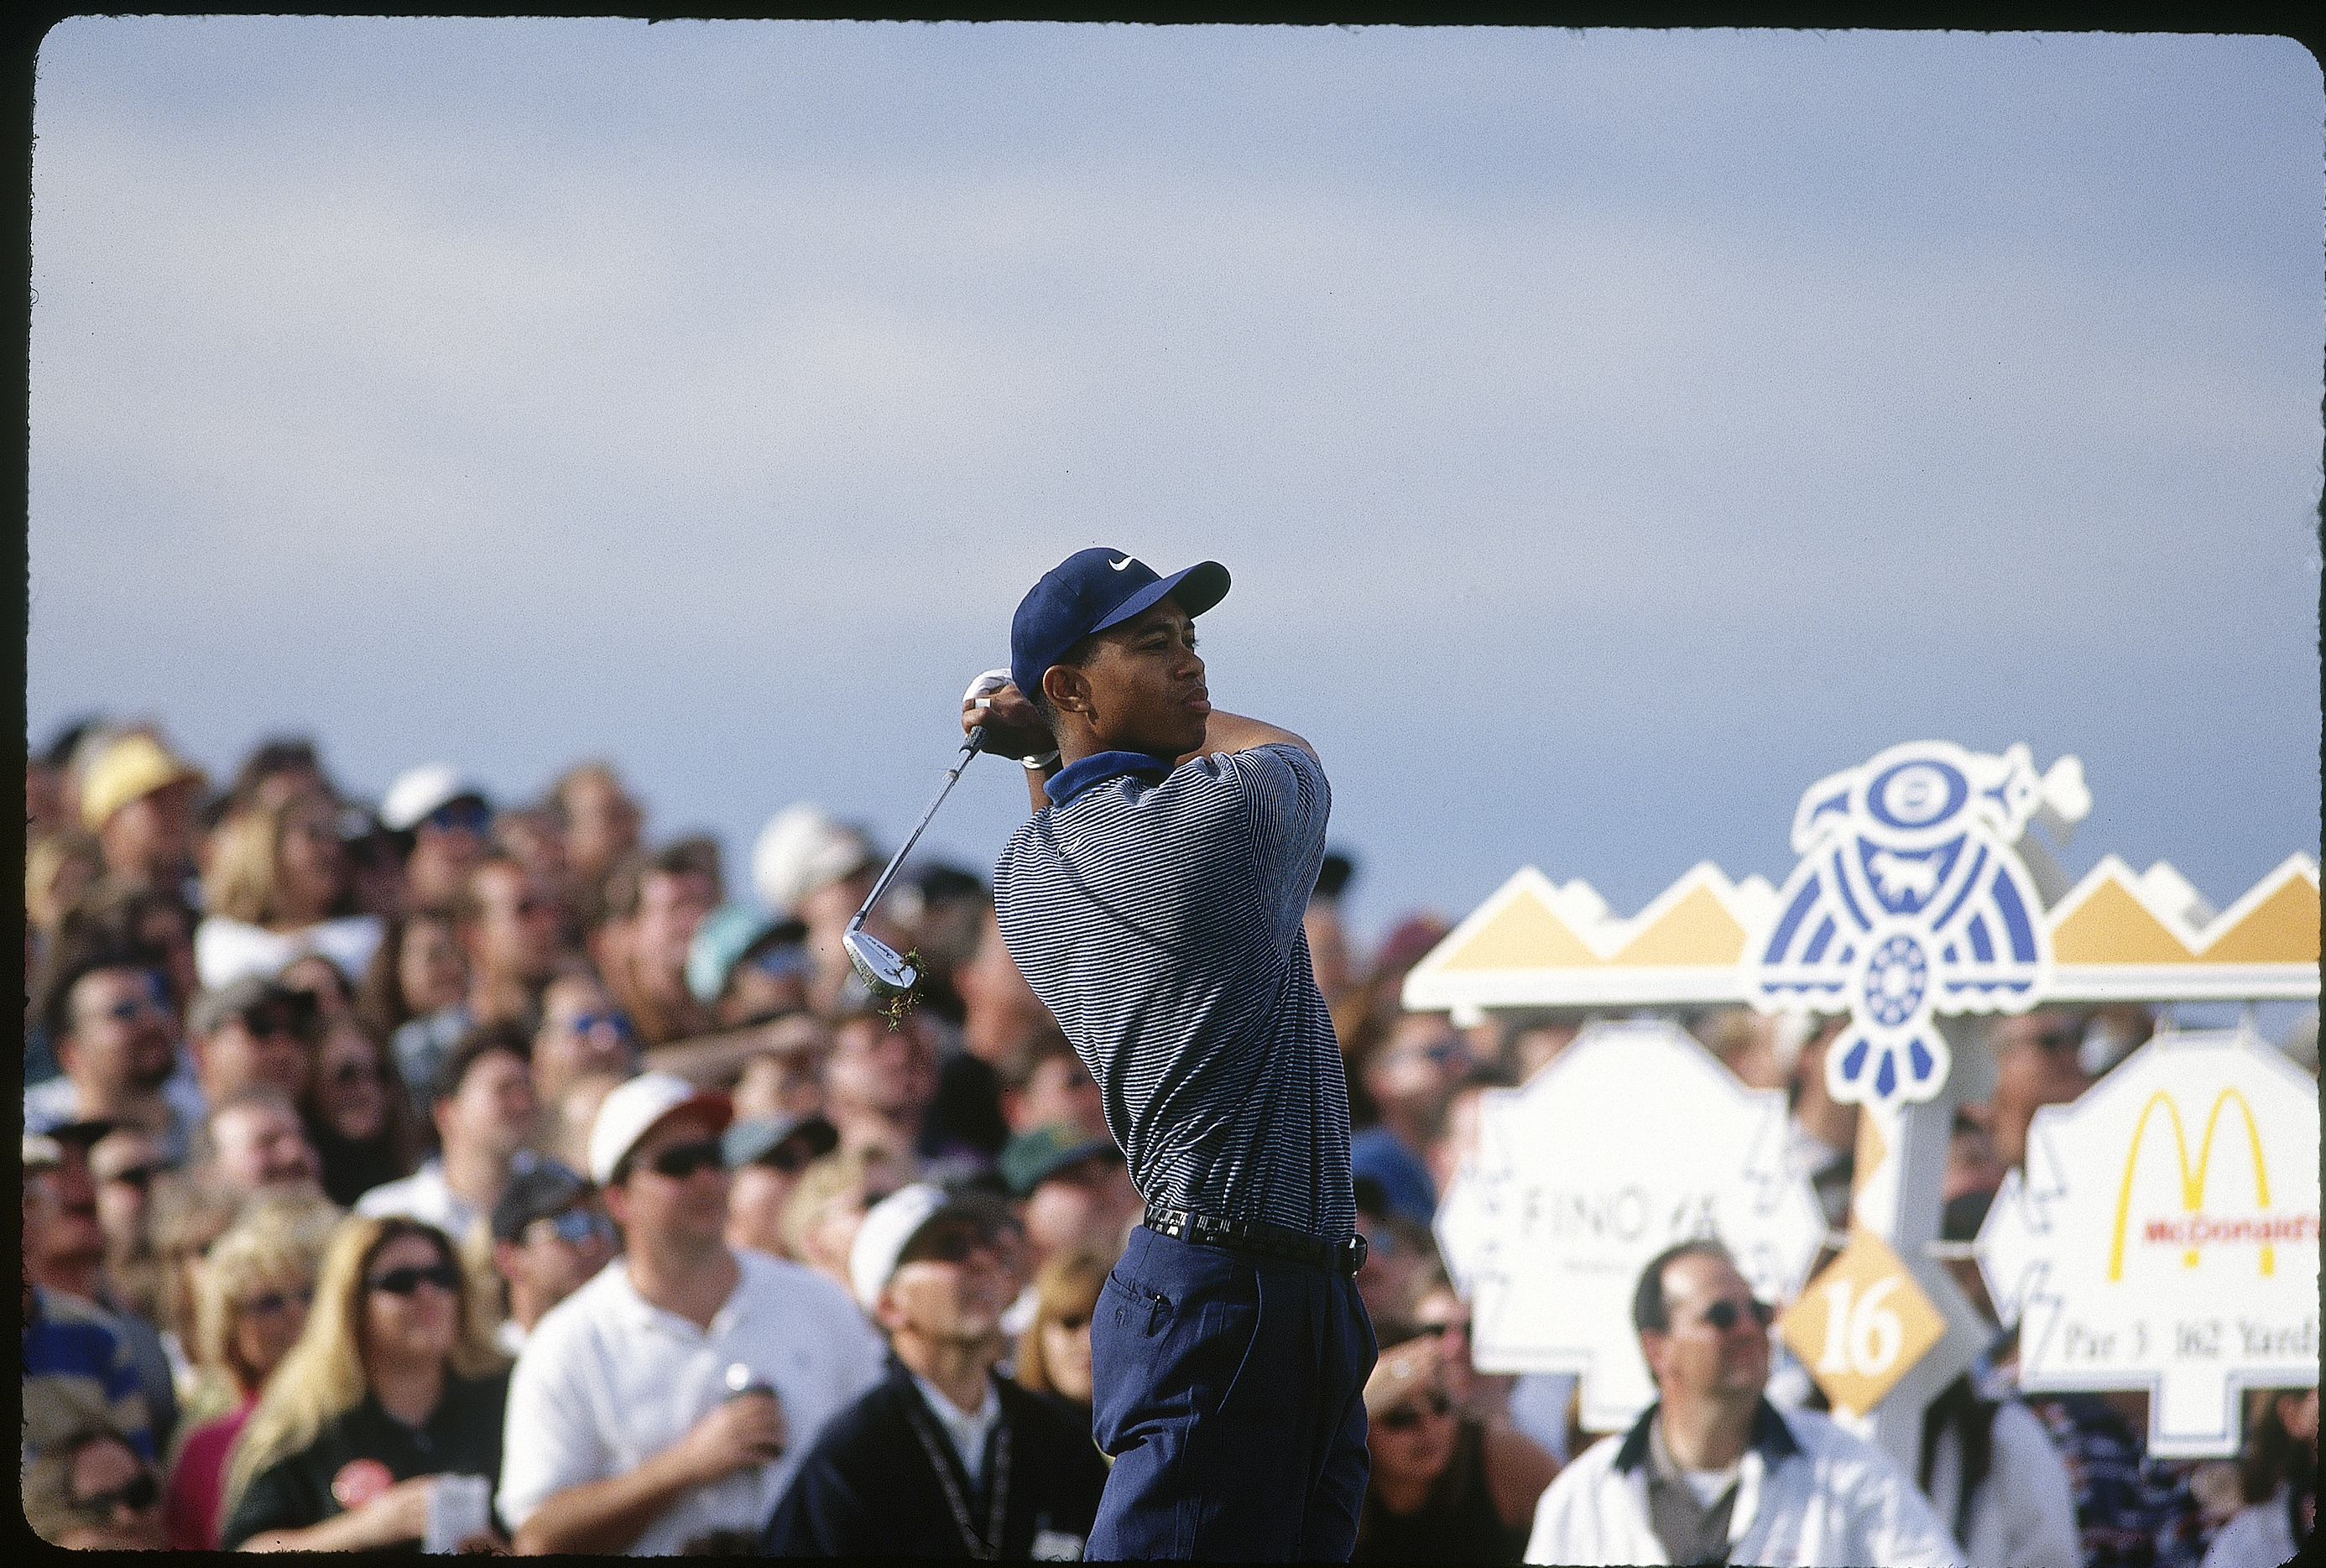 Woods holds his follow-through after his tee shot on 16. We're guessing that one felt good.